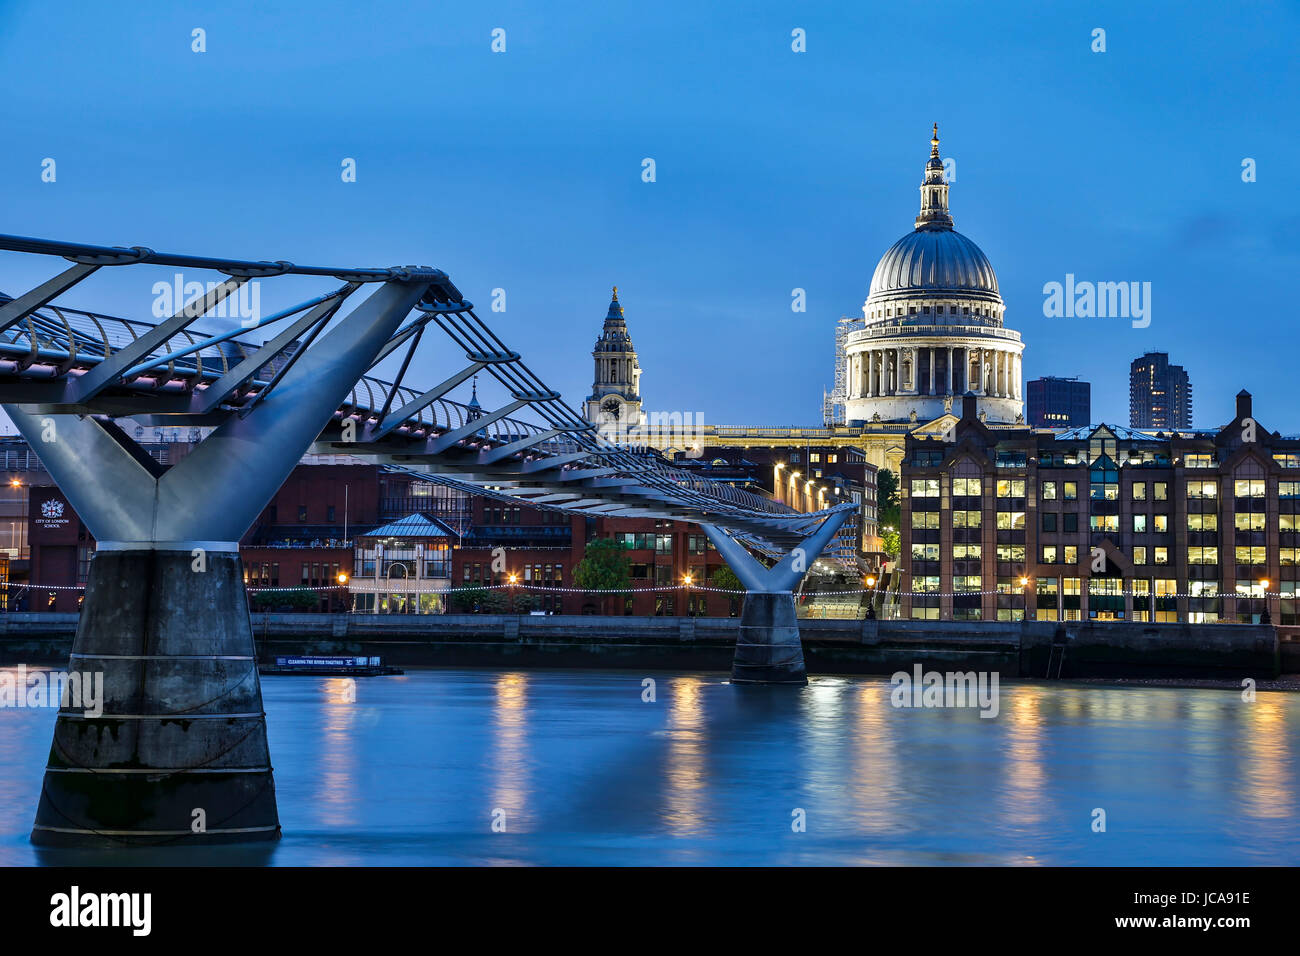 St. Paul's Cathedral, Millennium Bridge and River Thames, London, England, United Kingdom Stock Photo